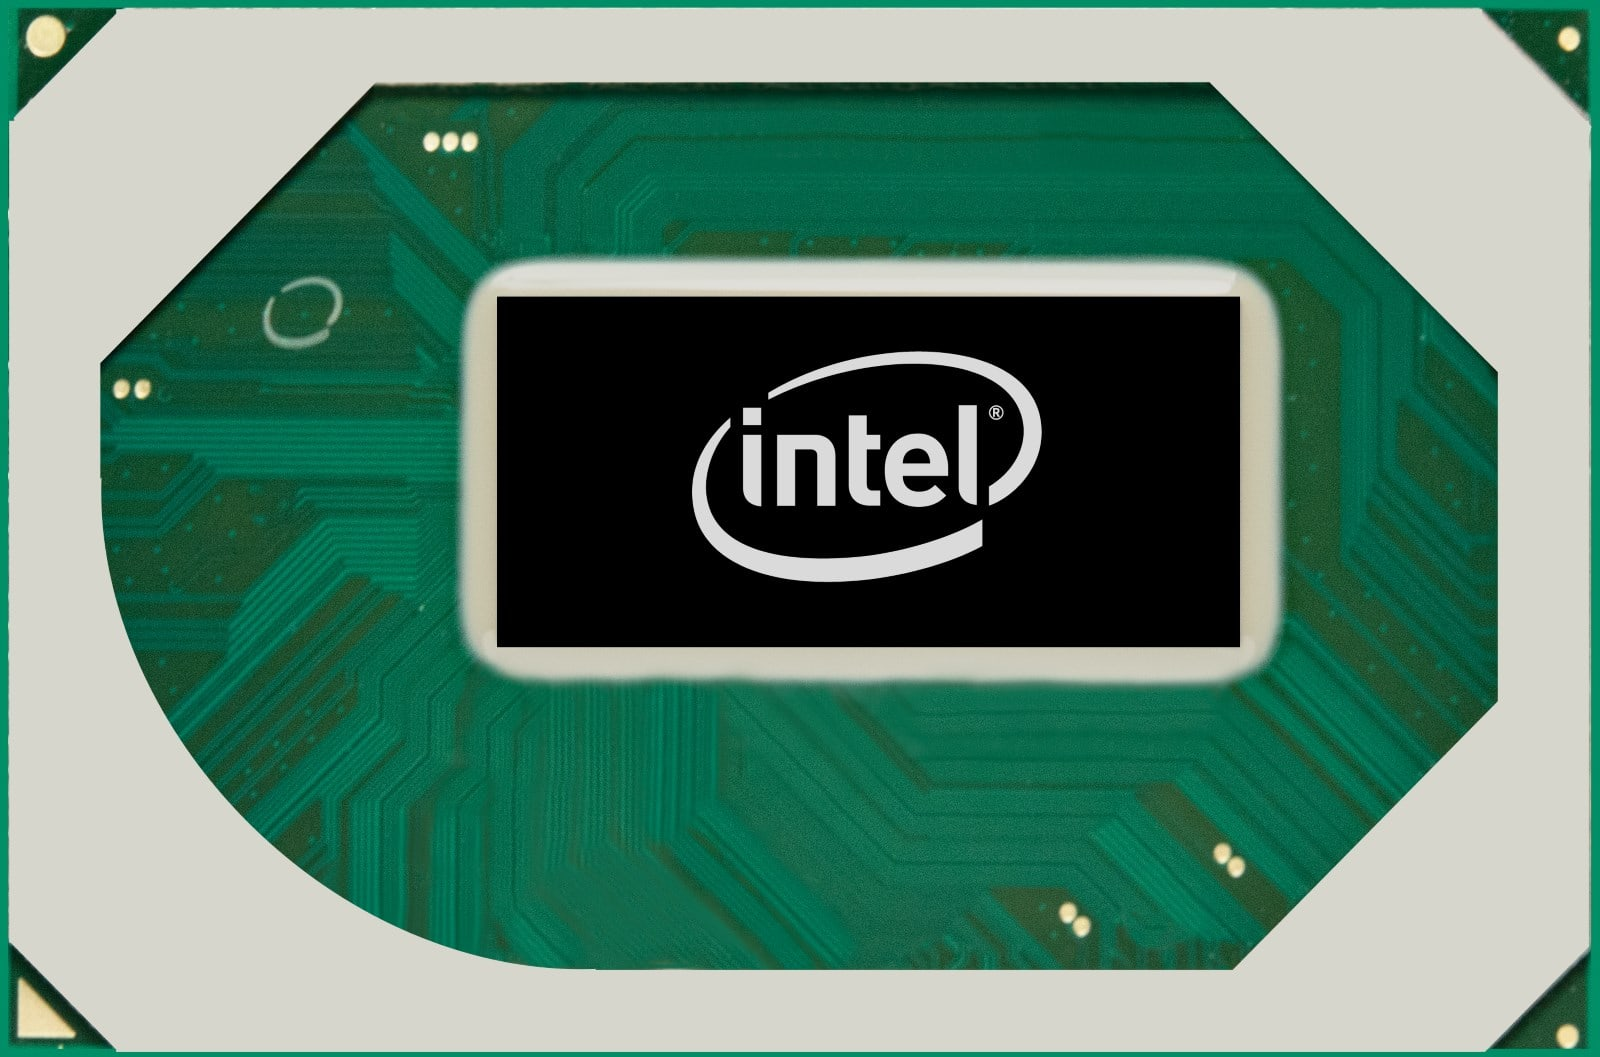 Intel 9th gen laptop